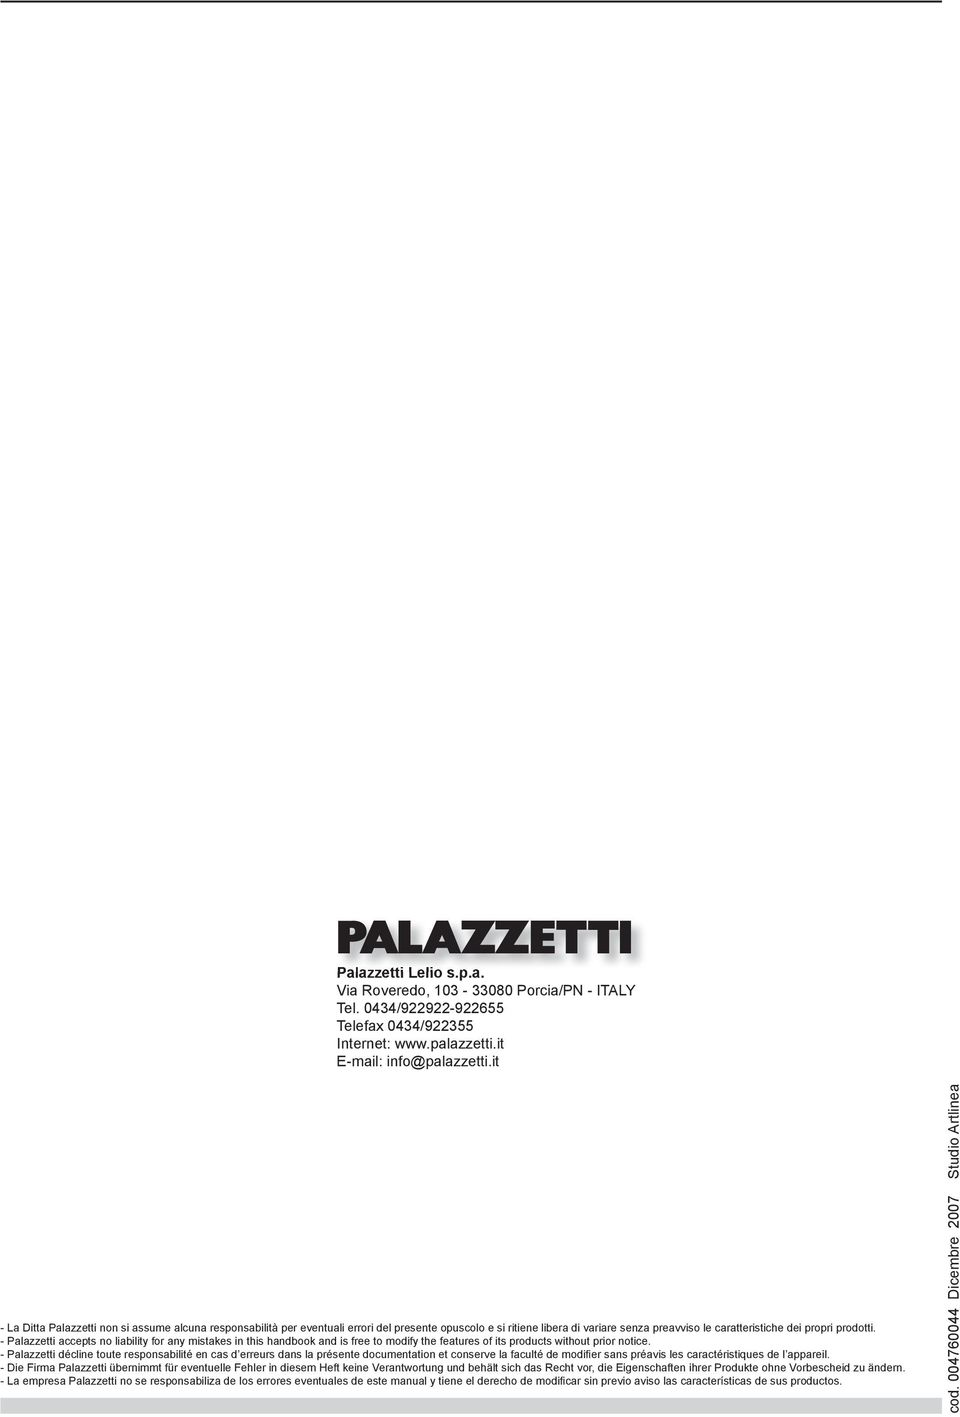 - Palazzetti accepts no liability for any mistakes in this handbook and is free to modify the features of its products without prior notice.